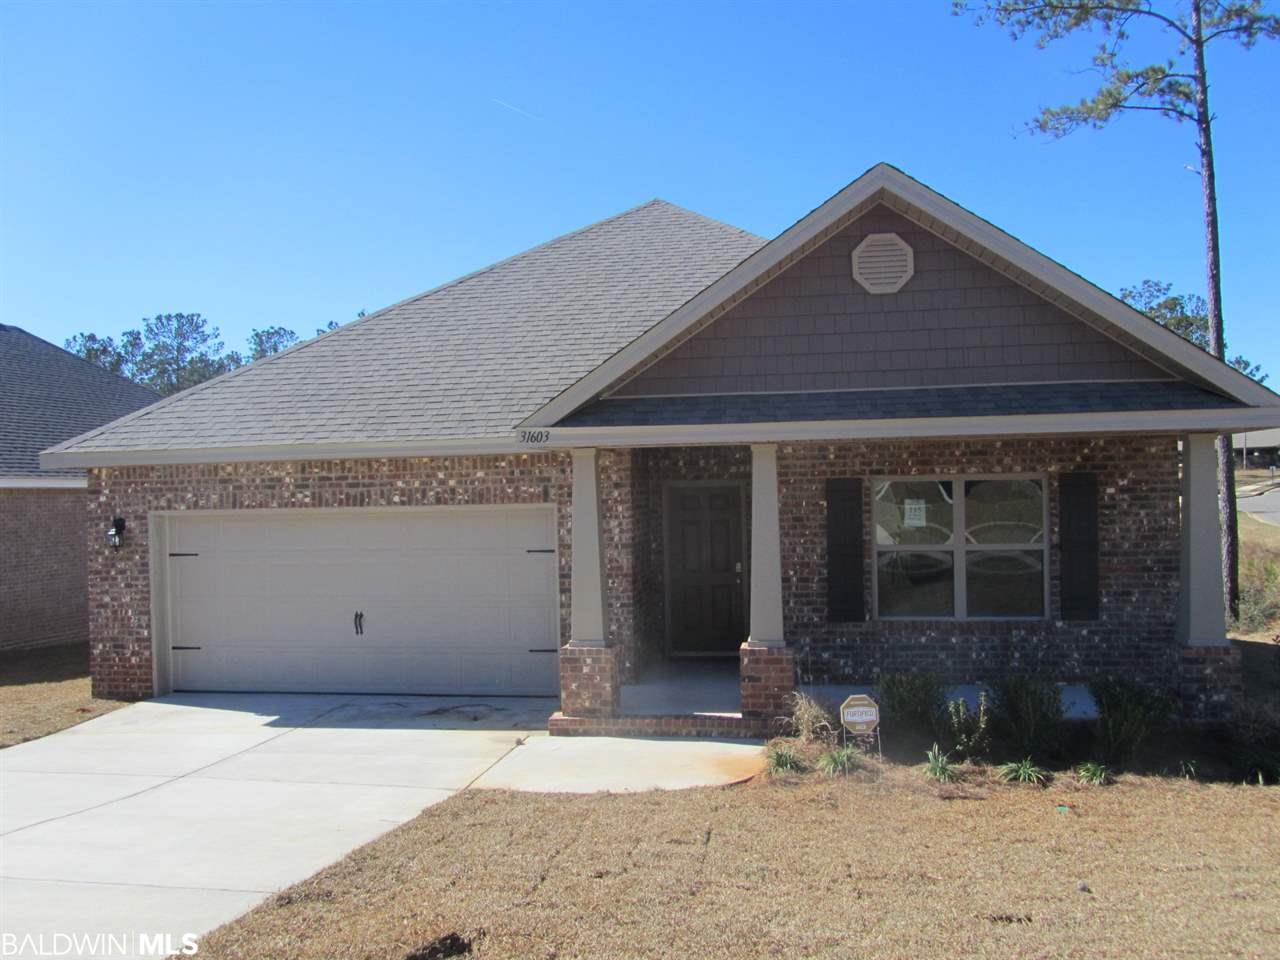 31603 Shearwater Drive Lot 115, Spanish Fort, AL 36527